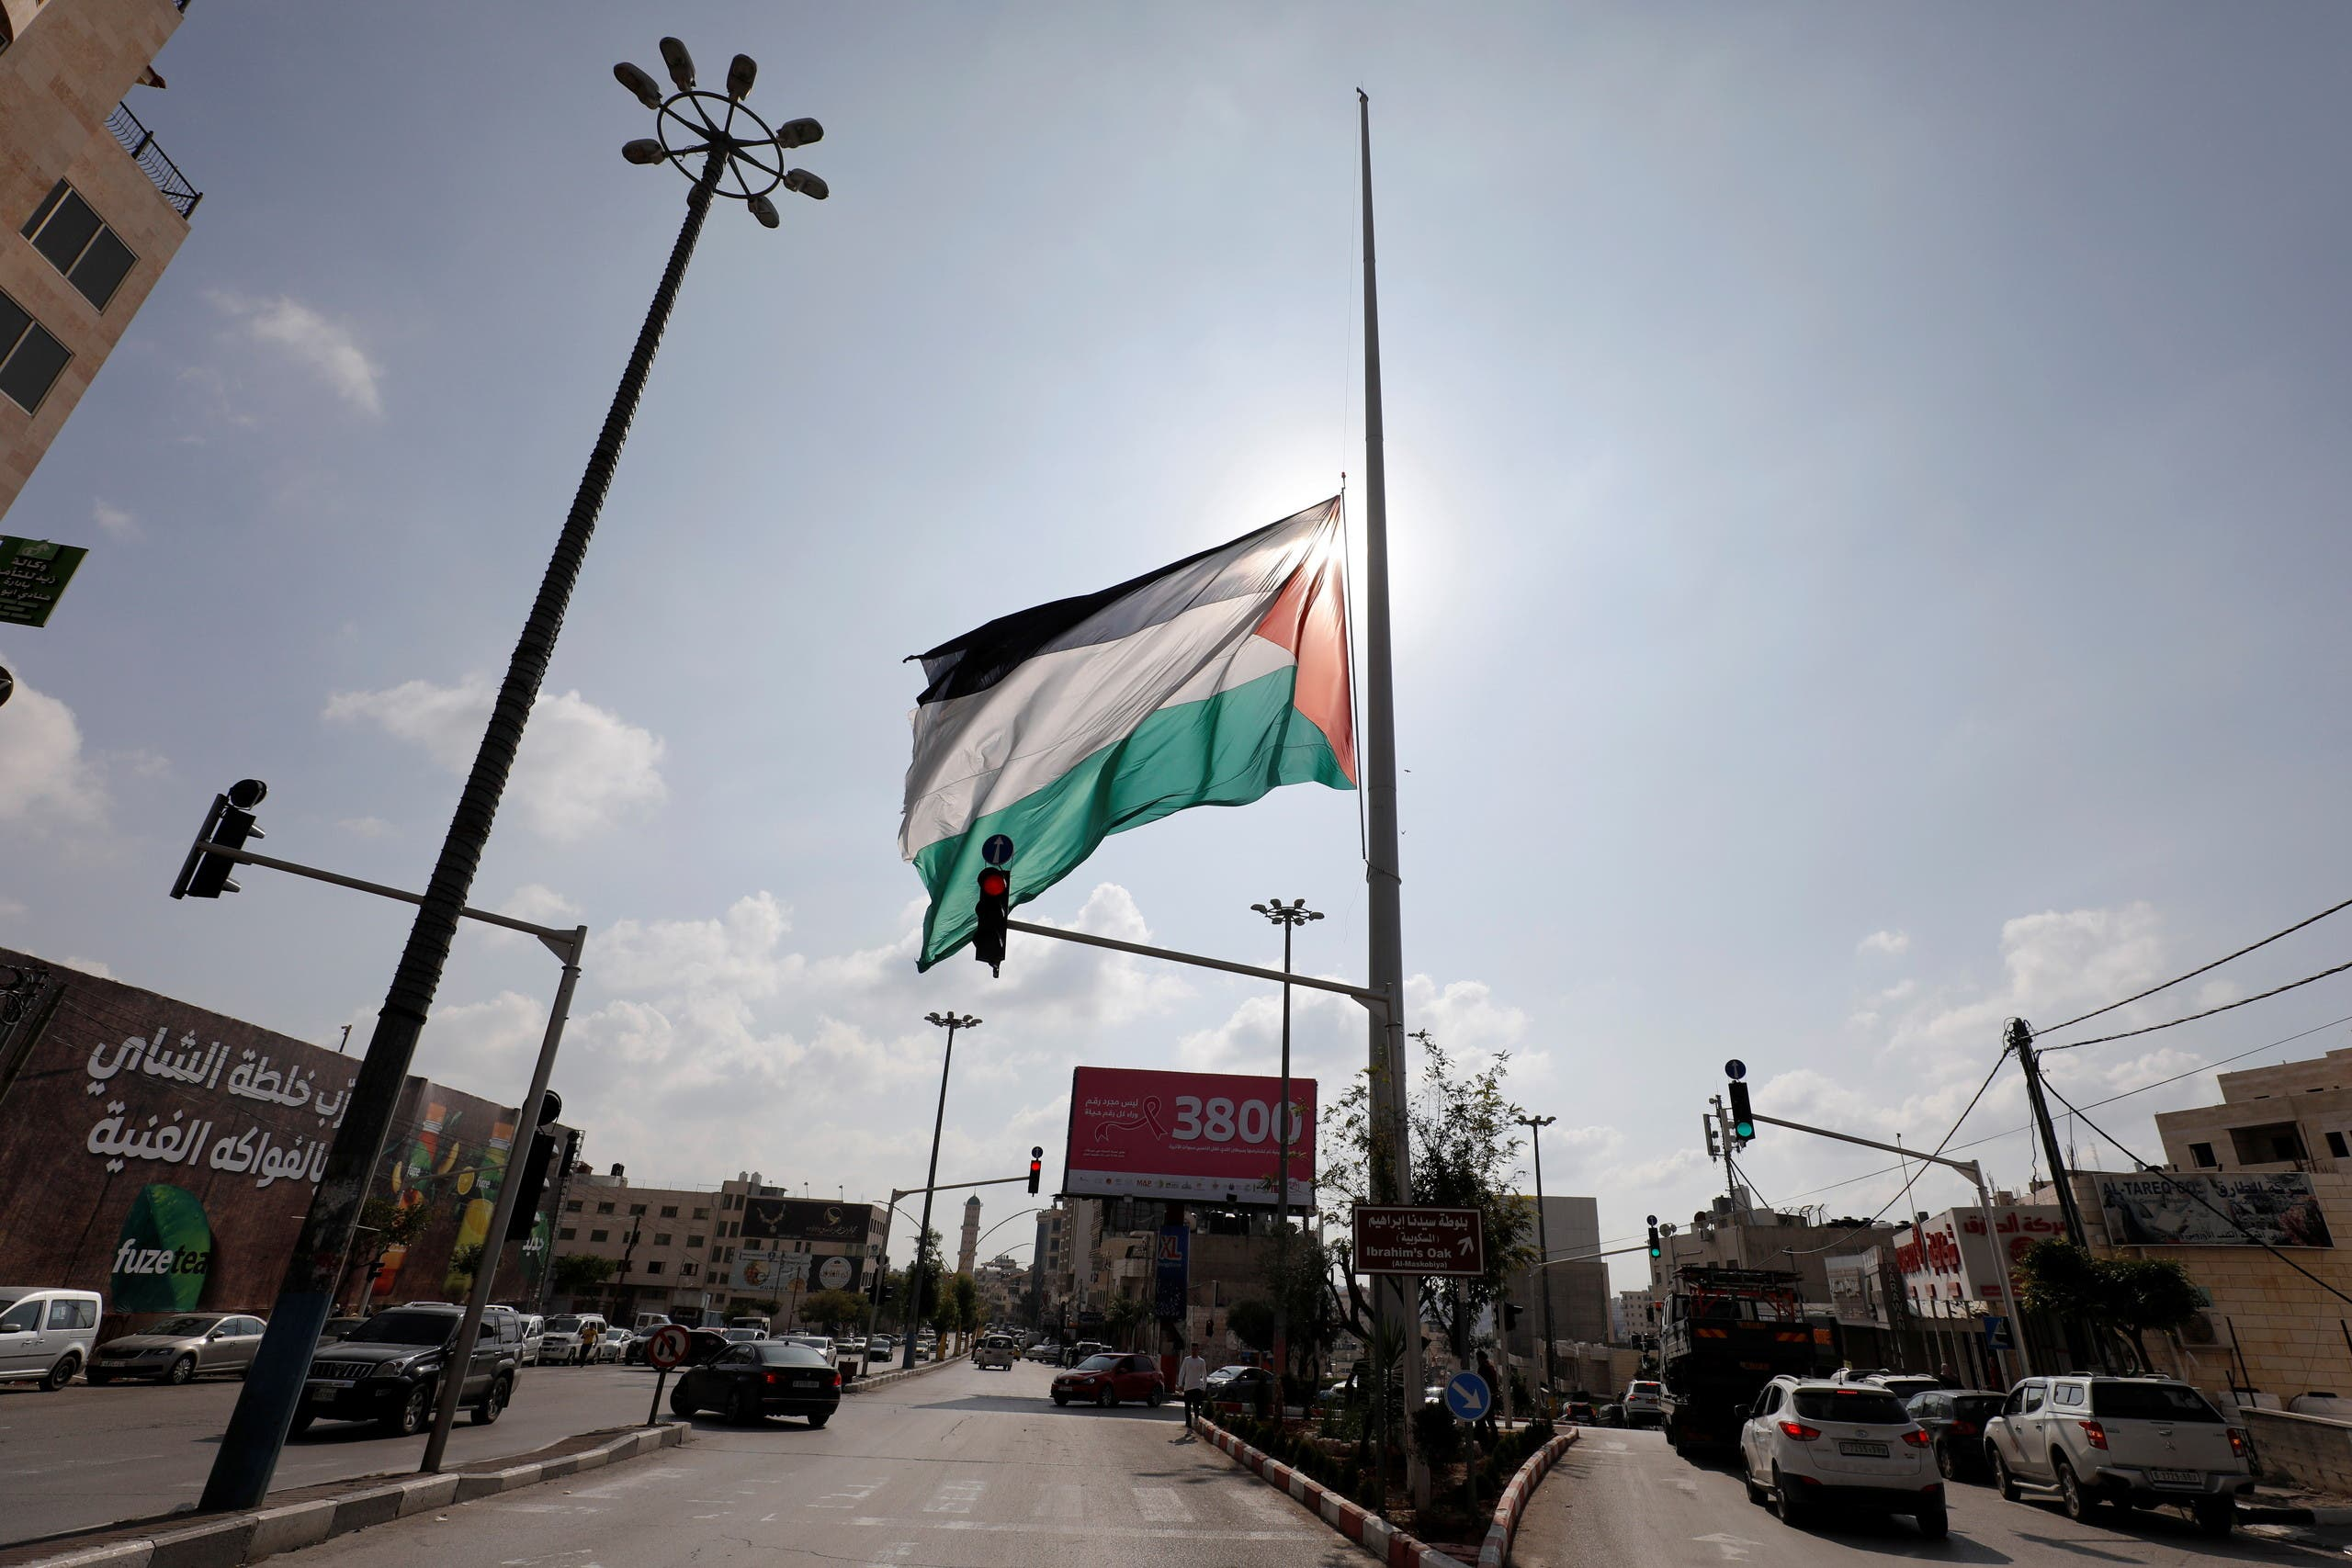 A Palestinian flag flies at half-mast after President Mahmoud Abbas declared a three-day mourning period for Saeb Erekat, the chief Palestinian negotiator who died after contracting the coronavirus disease (COVID-19). (Reuters)